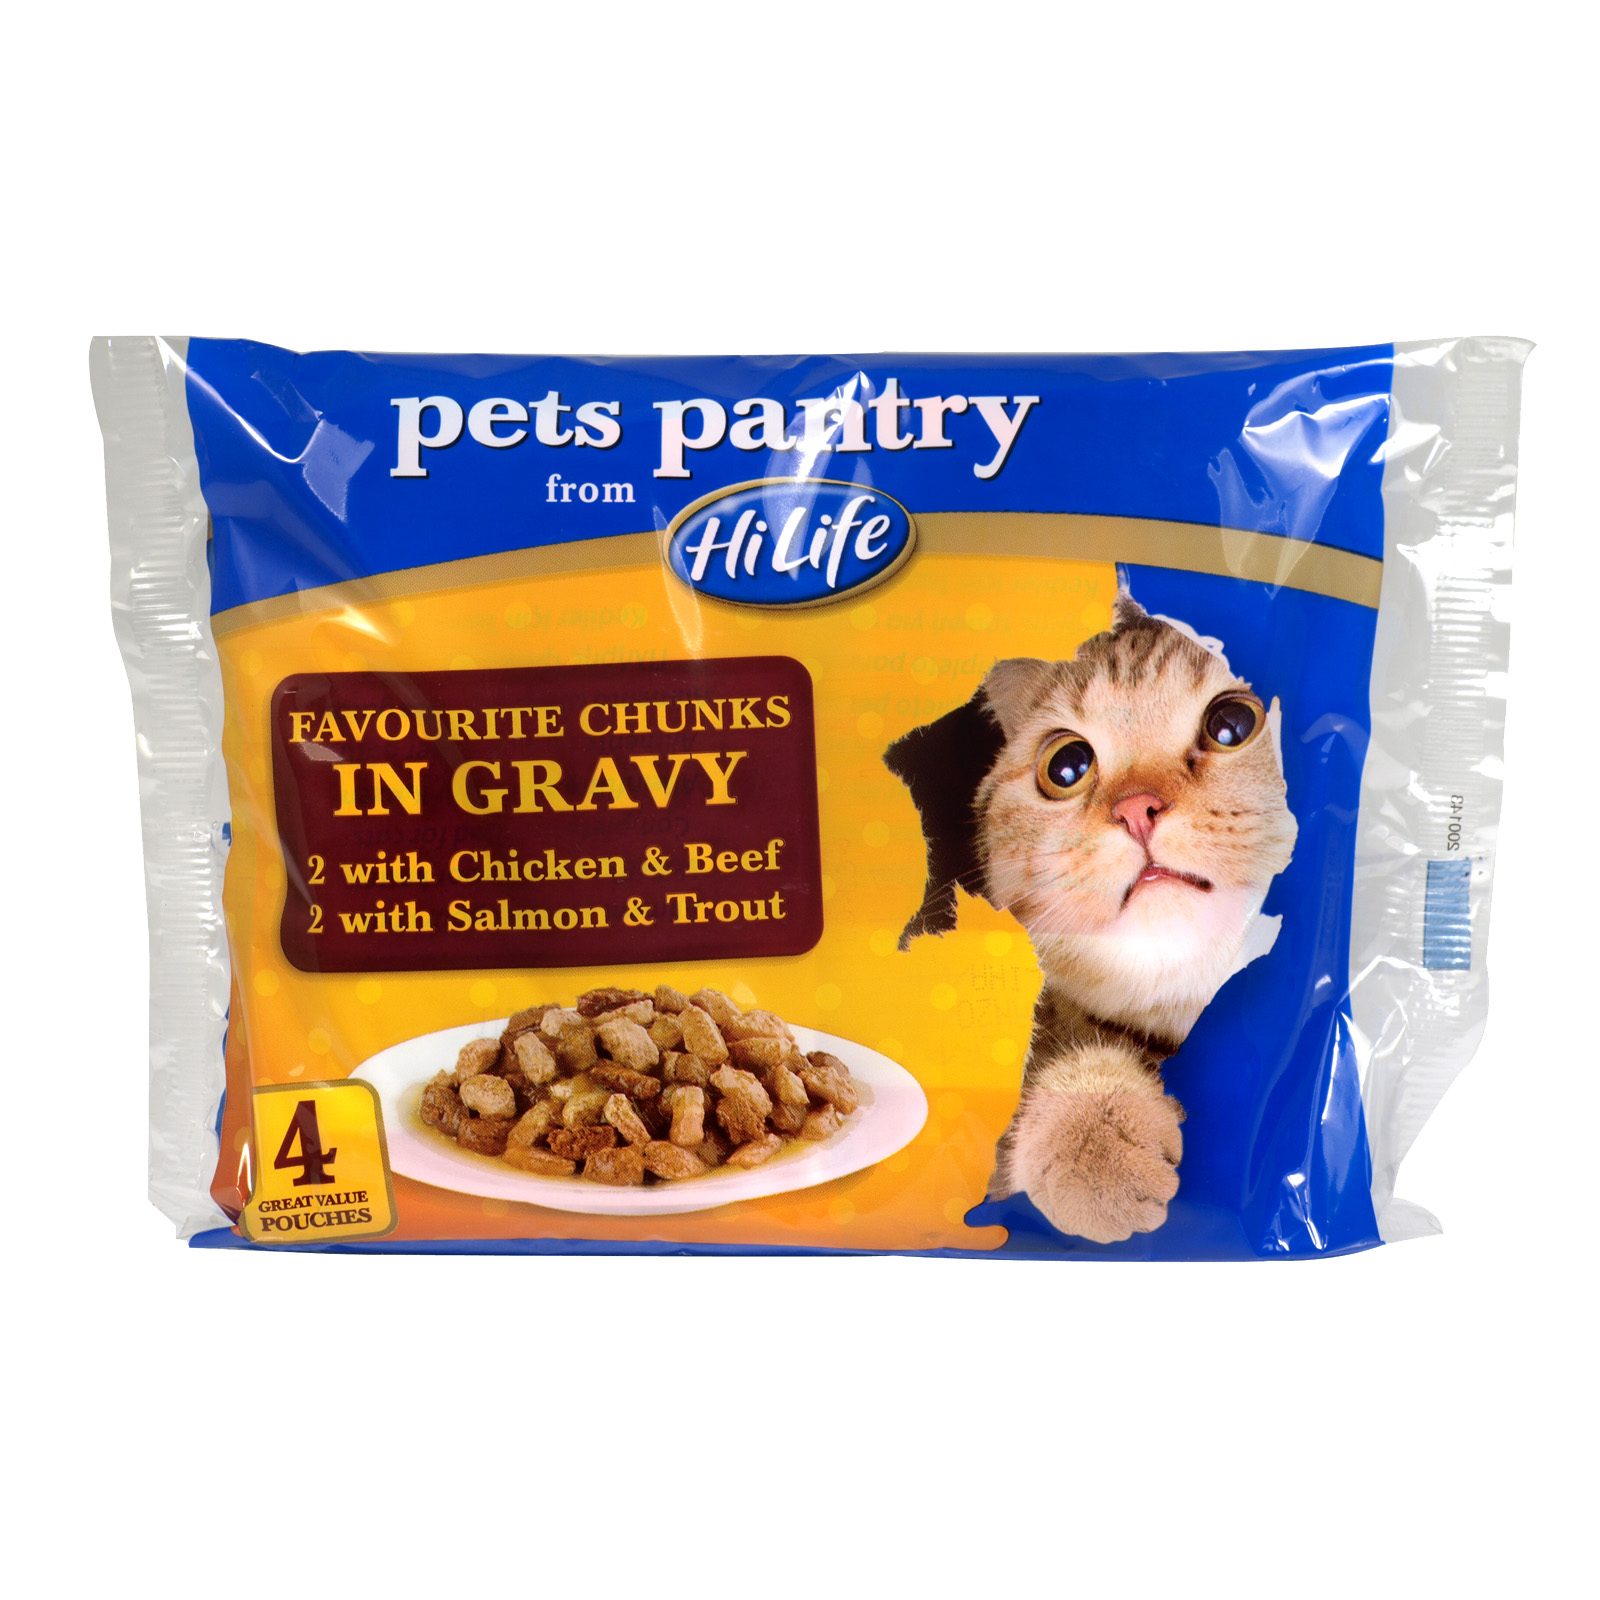 PETS PANTRY FAV CHUNKS IN GRAVY 4PKX100GM X12